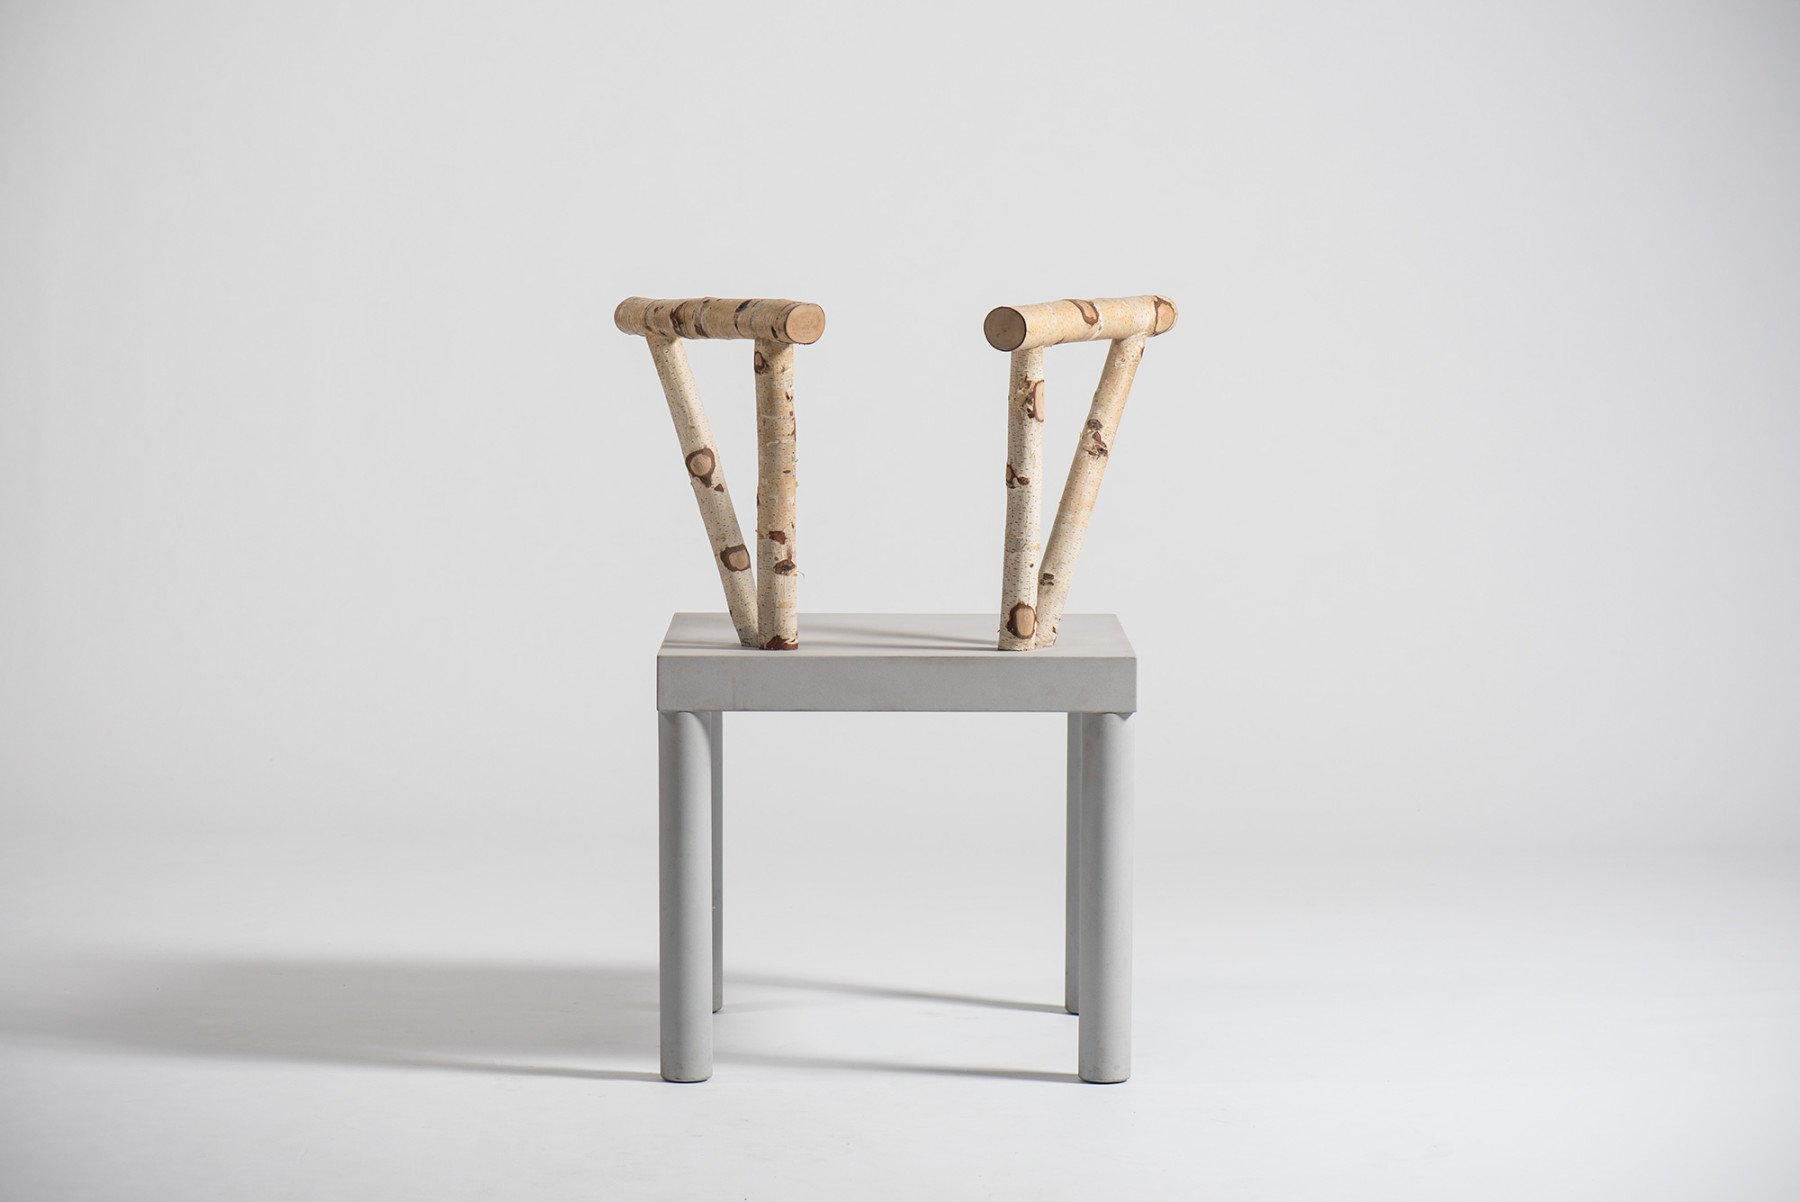 Andrea Branzi |   Domestic Animals chair